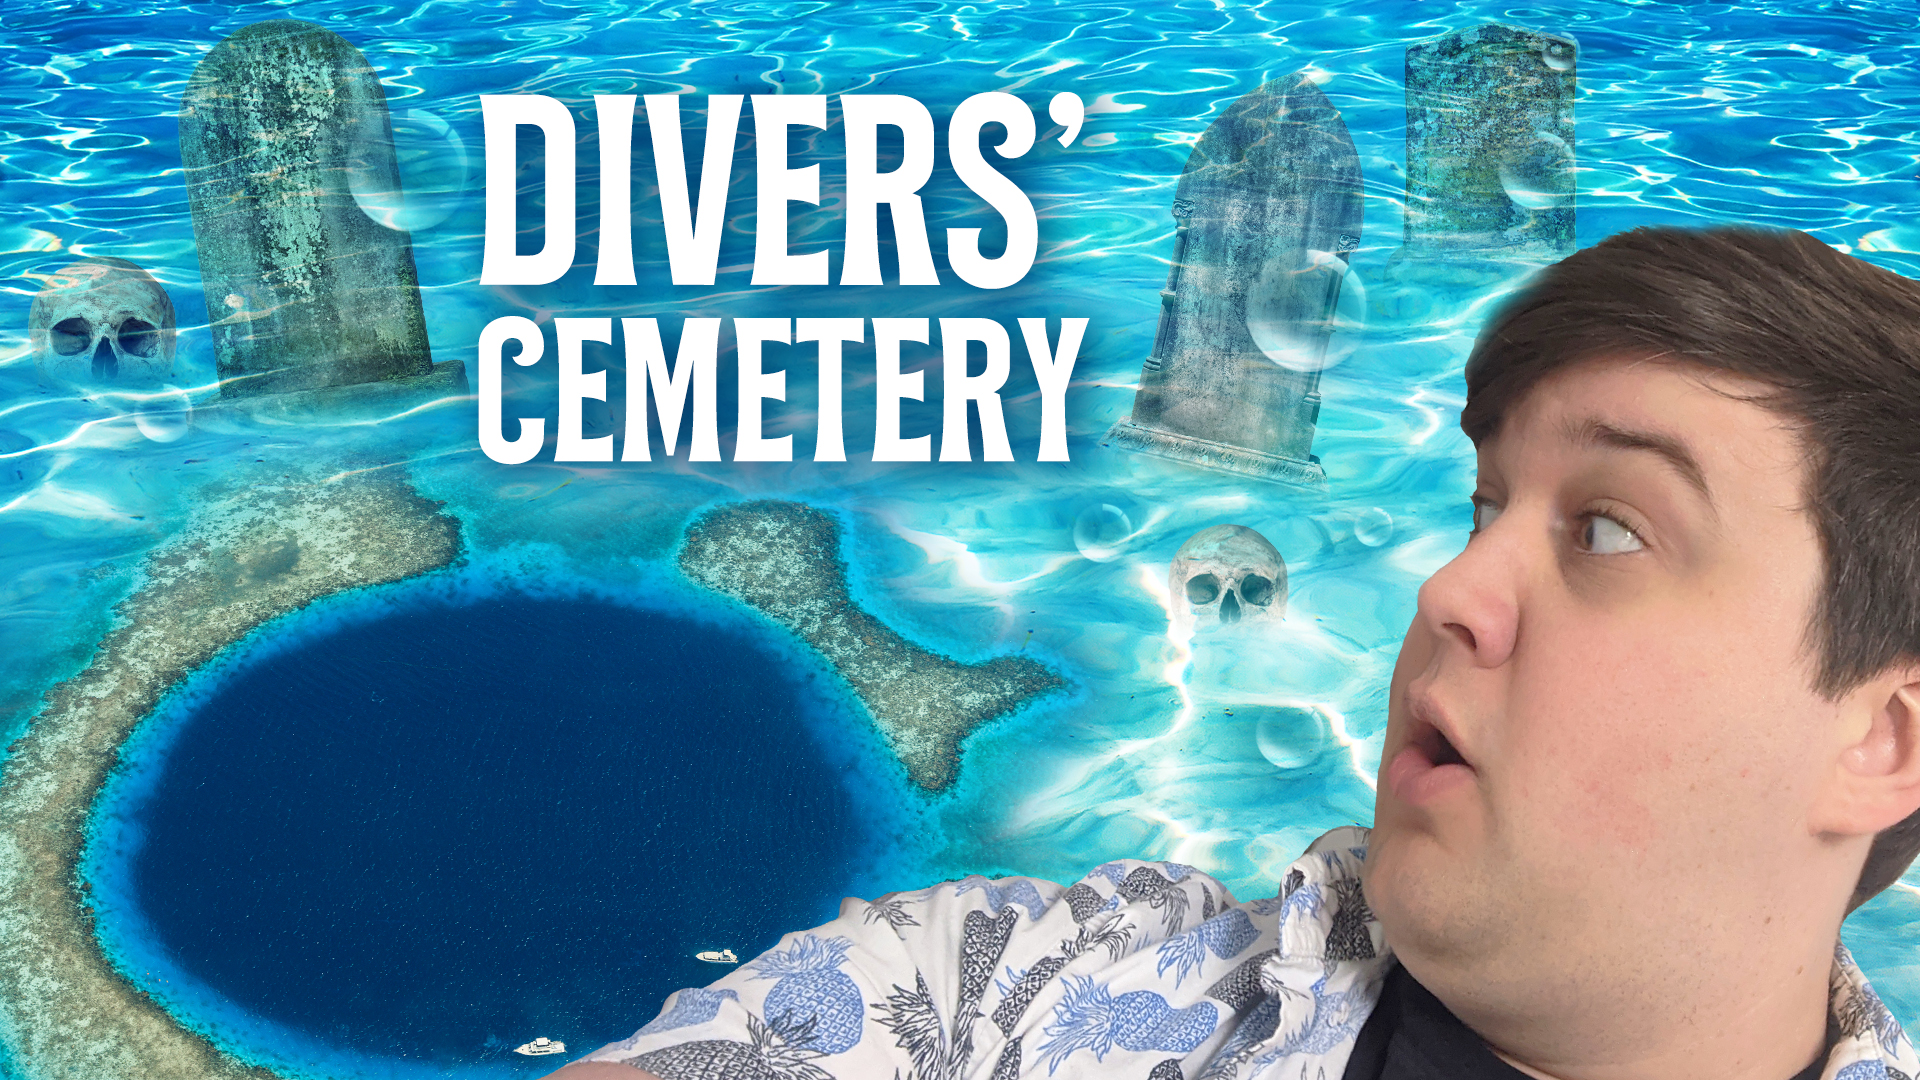 Divers' Cemetery